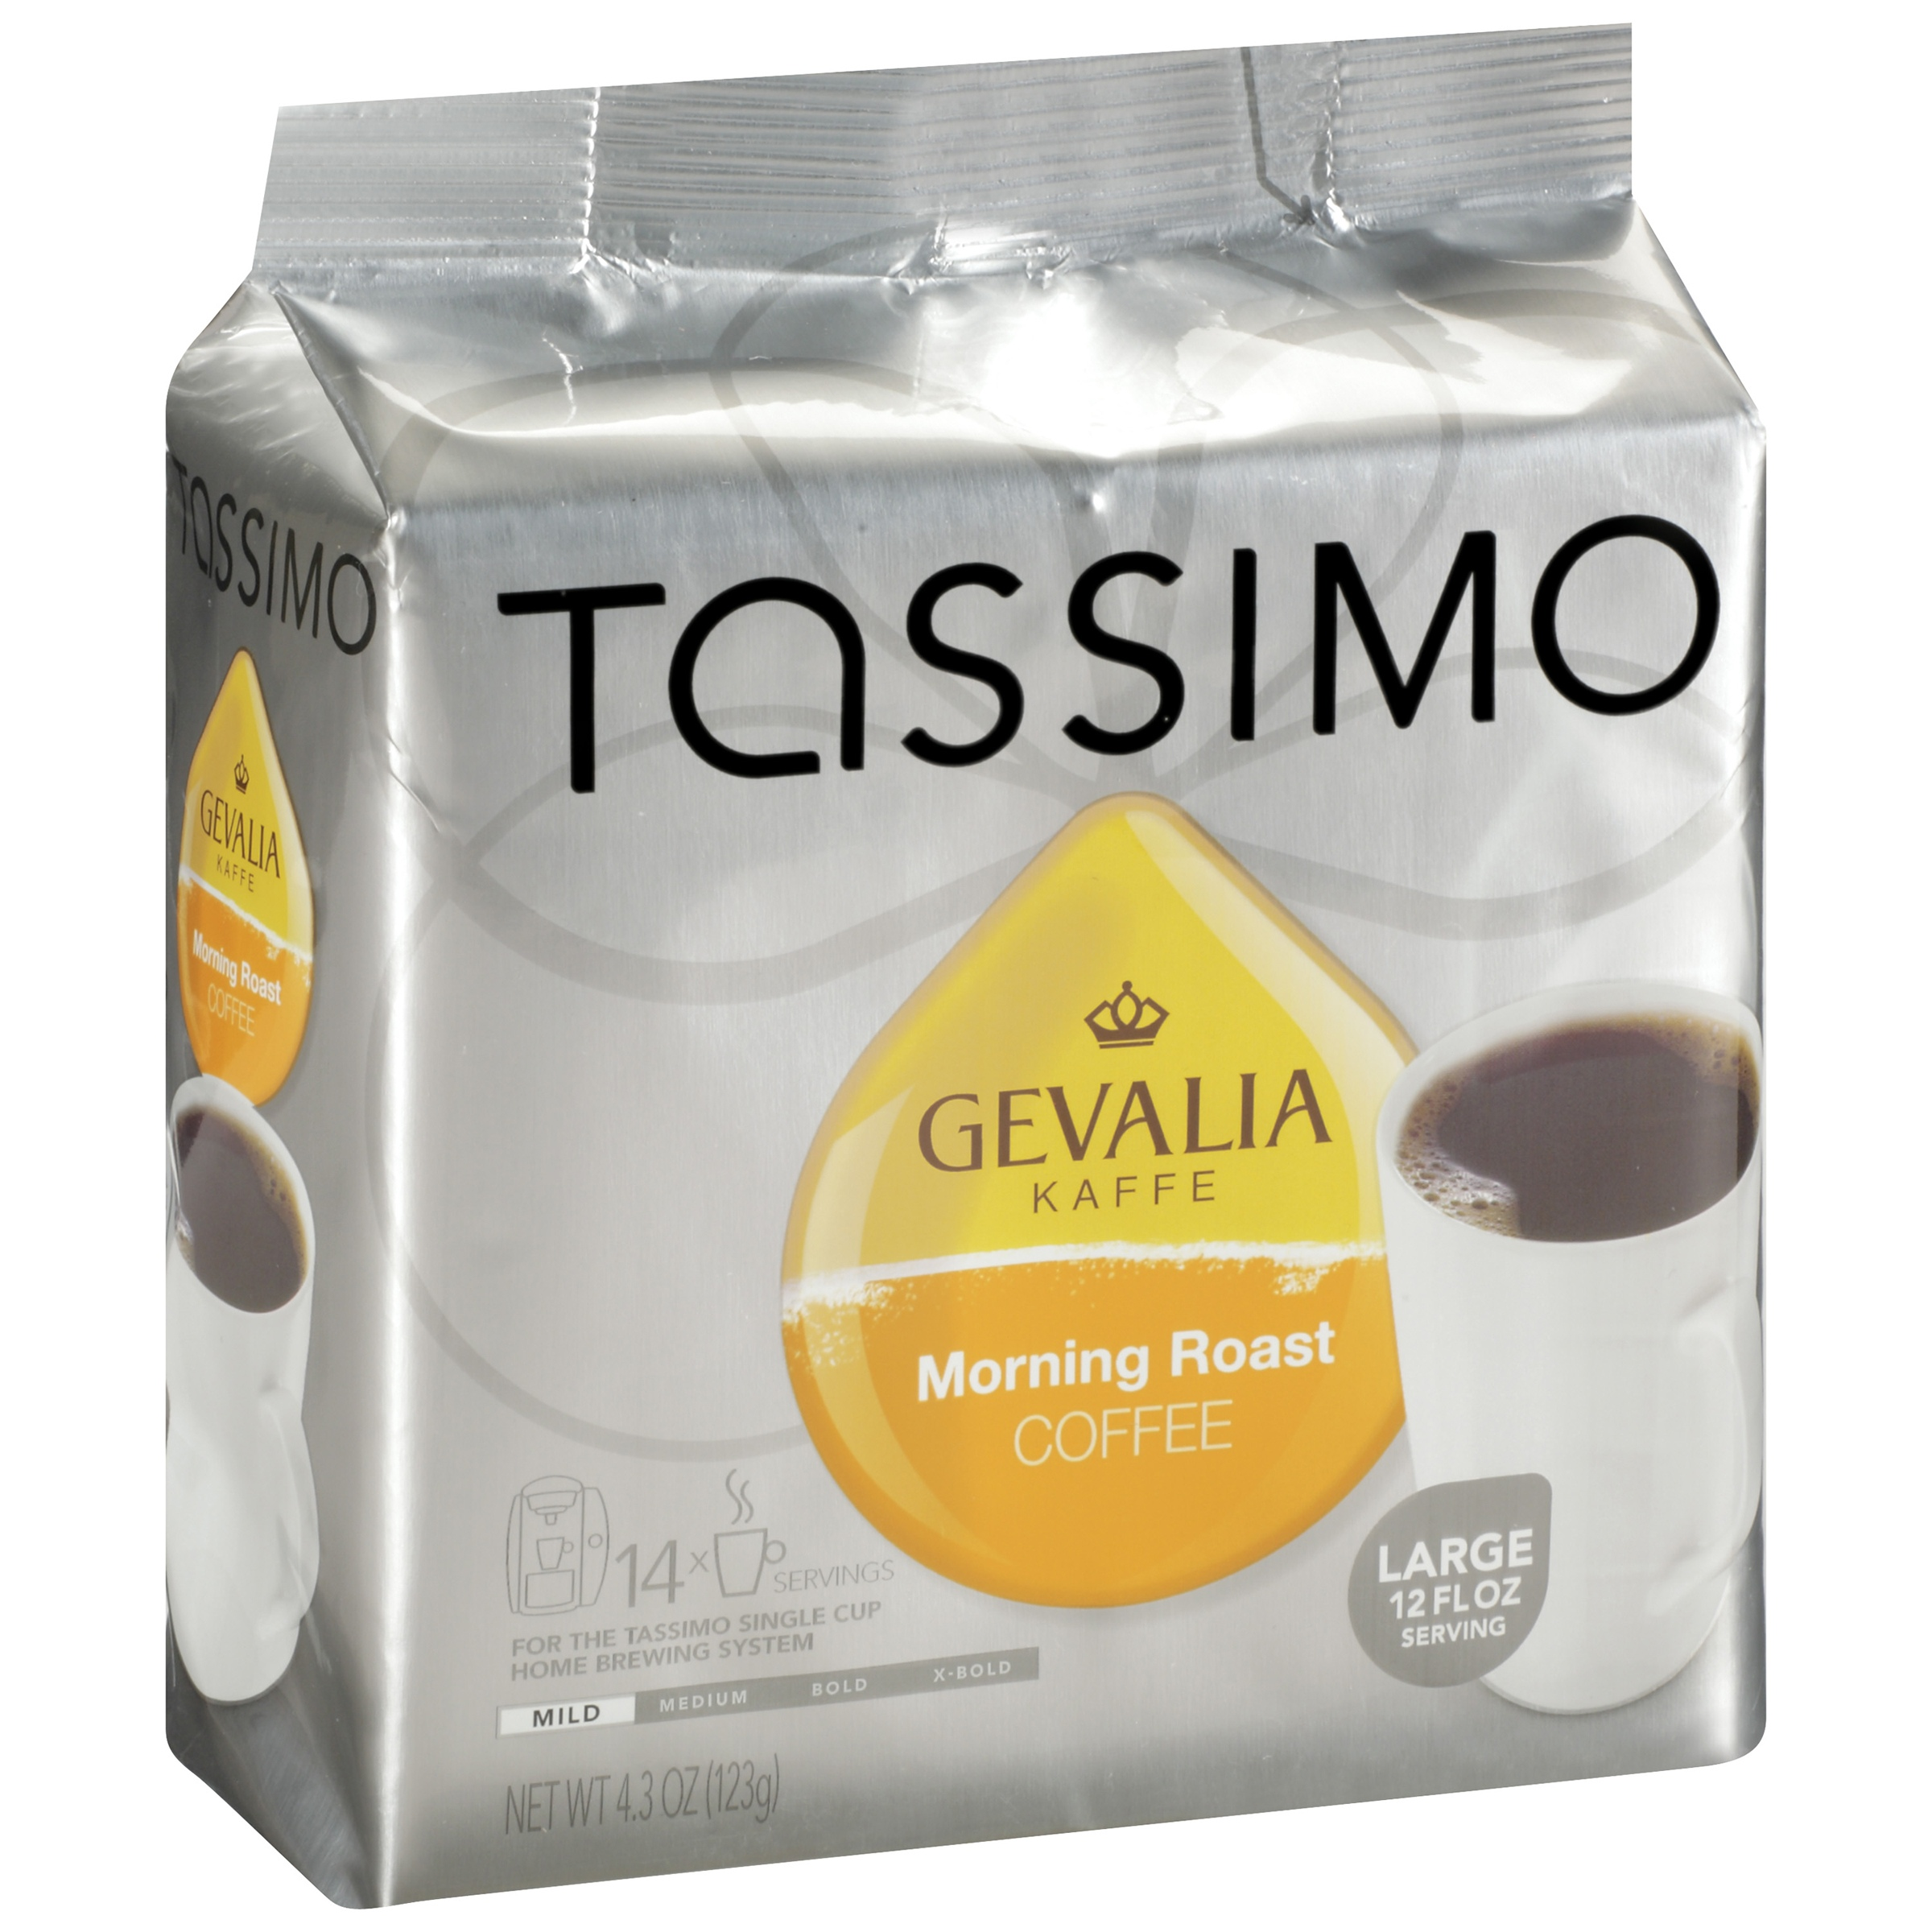 Tassimo Gevalia Morning Roast Coffee 14 count